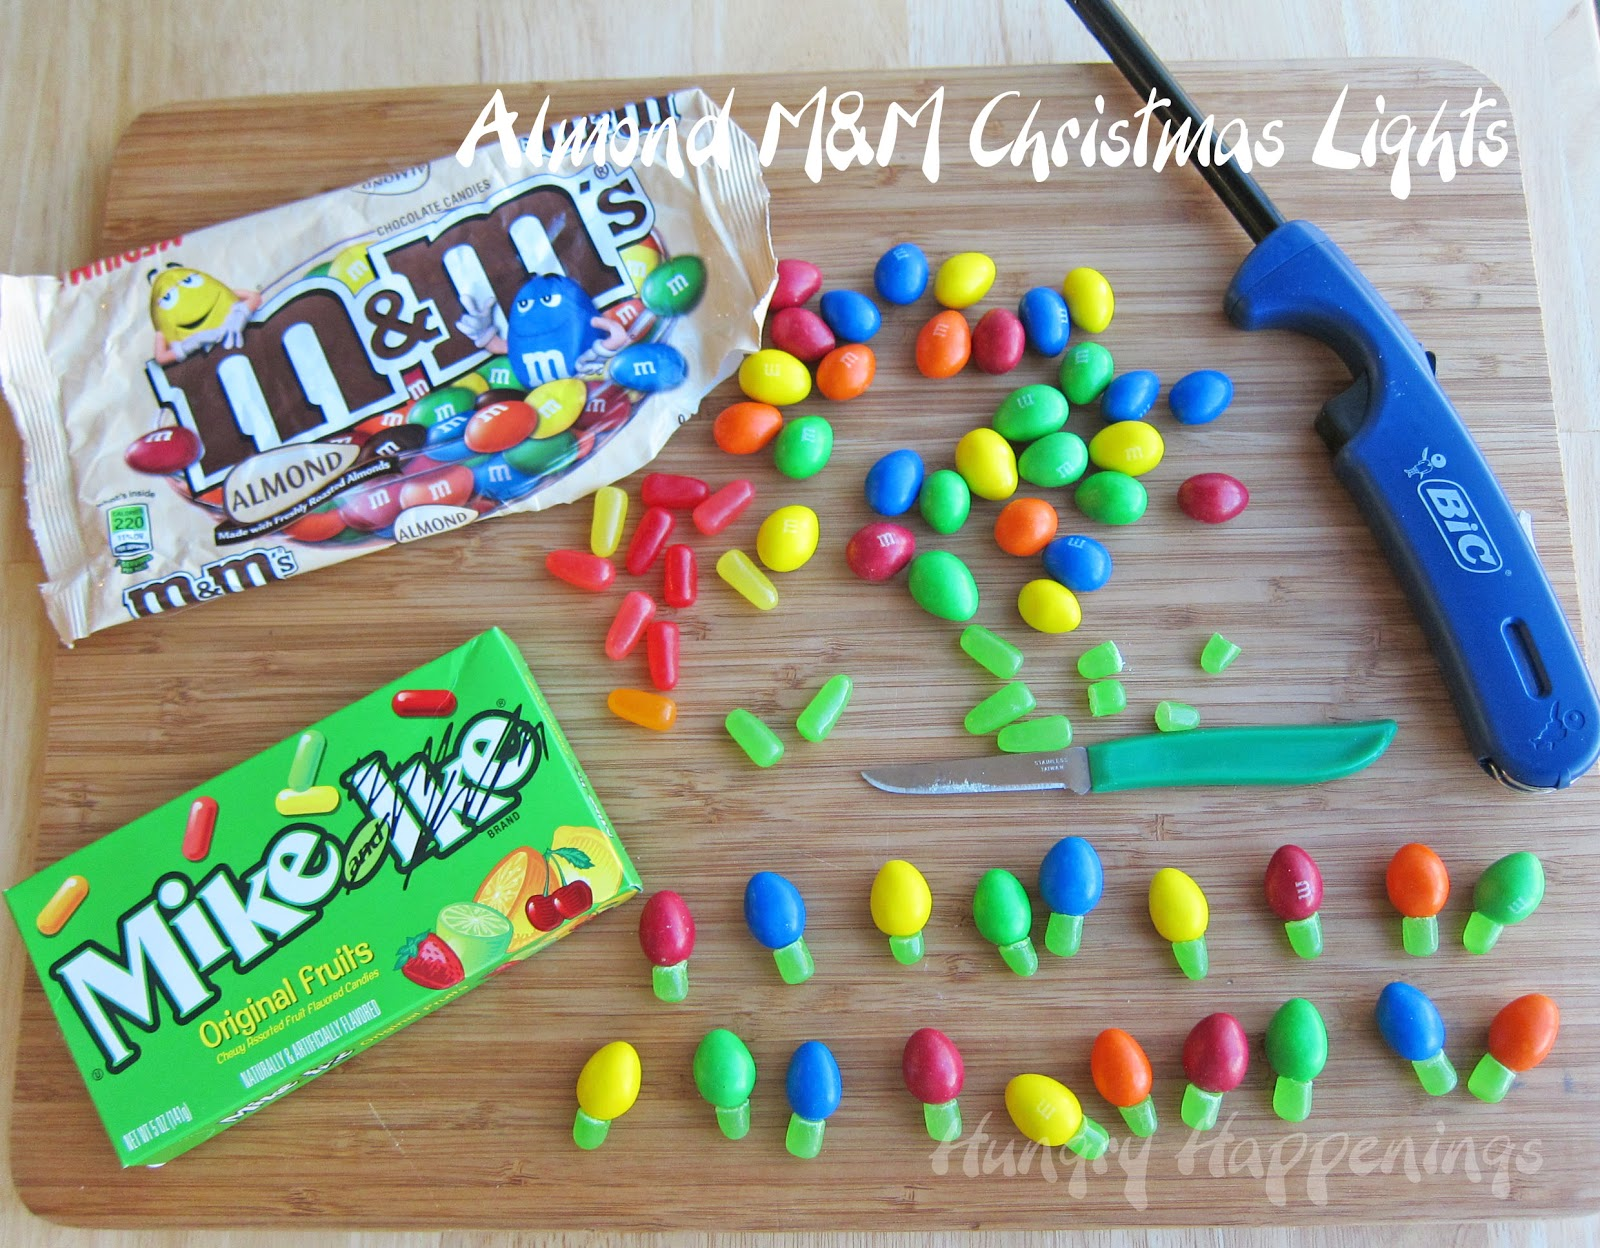 And ike candies into candy christmas lights chrismtas crafts for kids